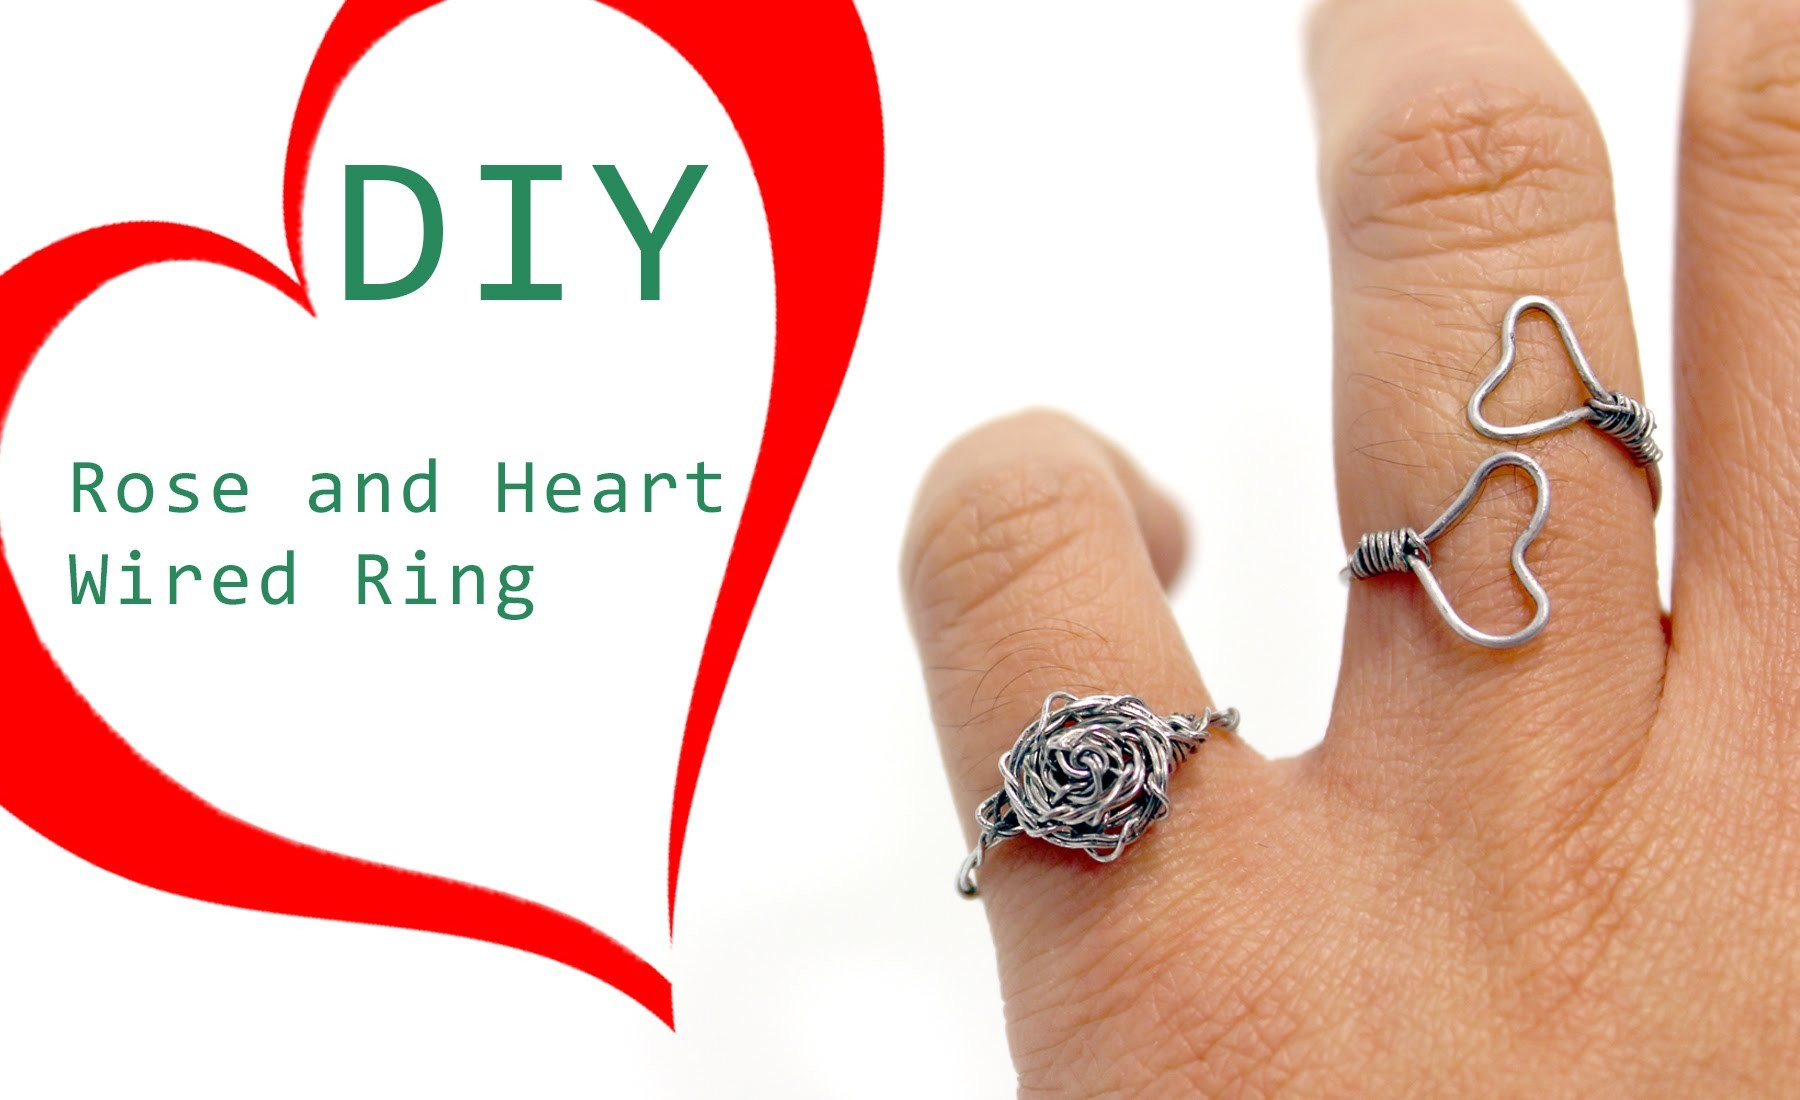 DIY Rose and Heart Wired Ring